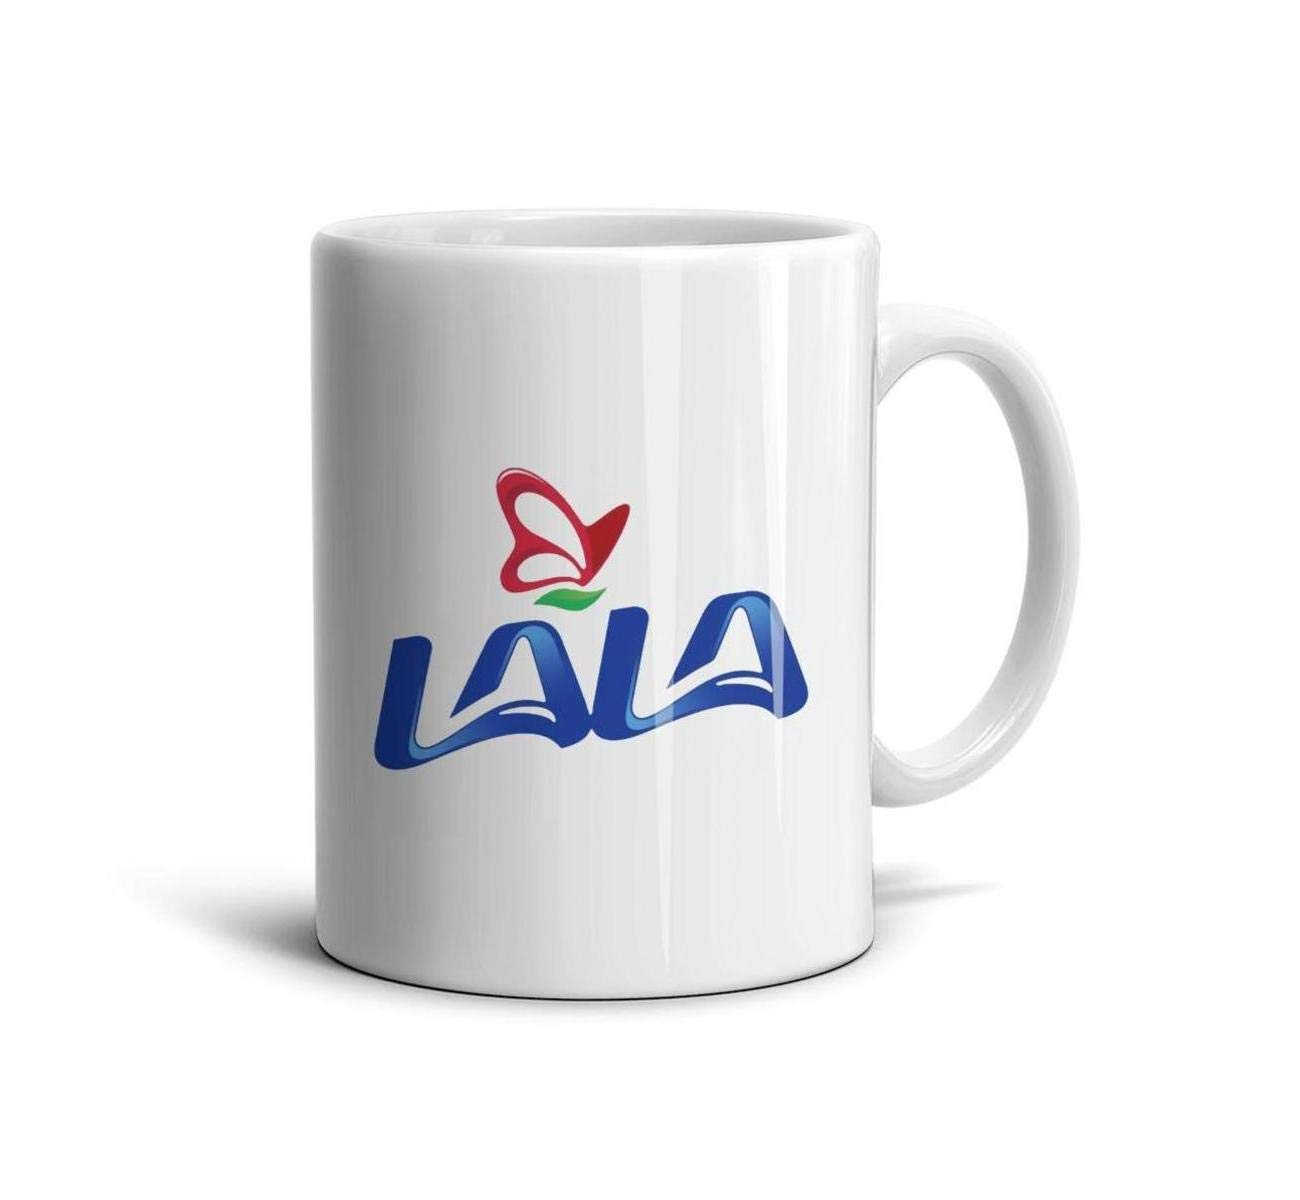 HIYITUTA Grupo Lala Logo Mug Novelty Daily Use Mug 11 Oz Holidays Mugs Boyfriend Mom